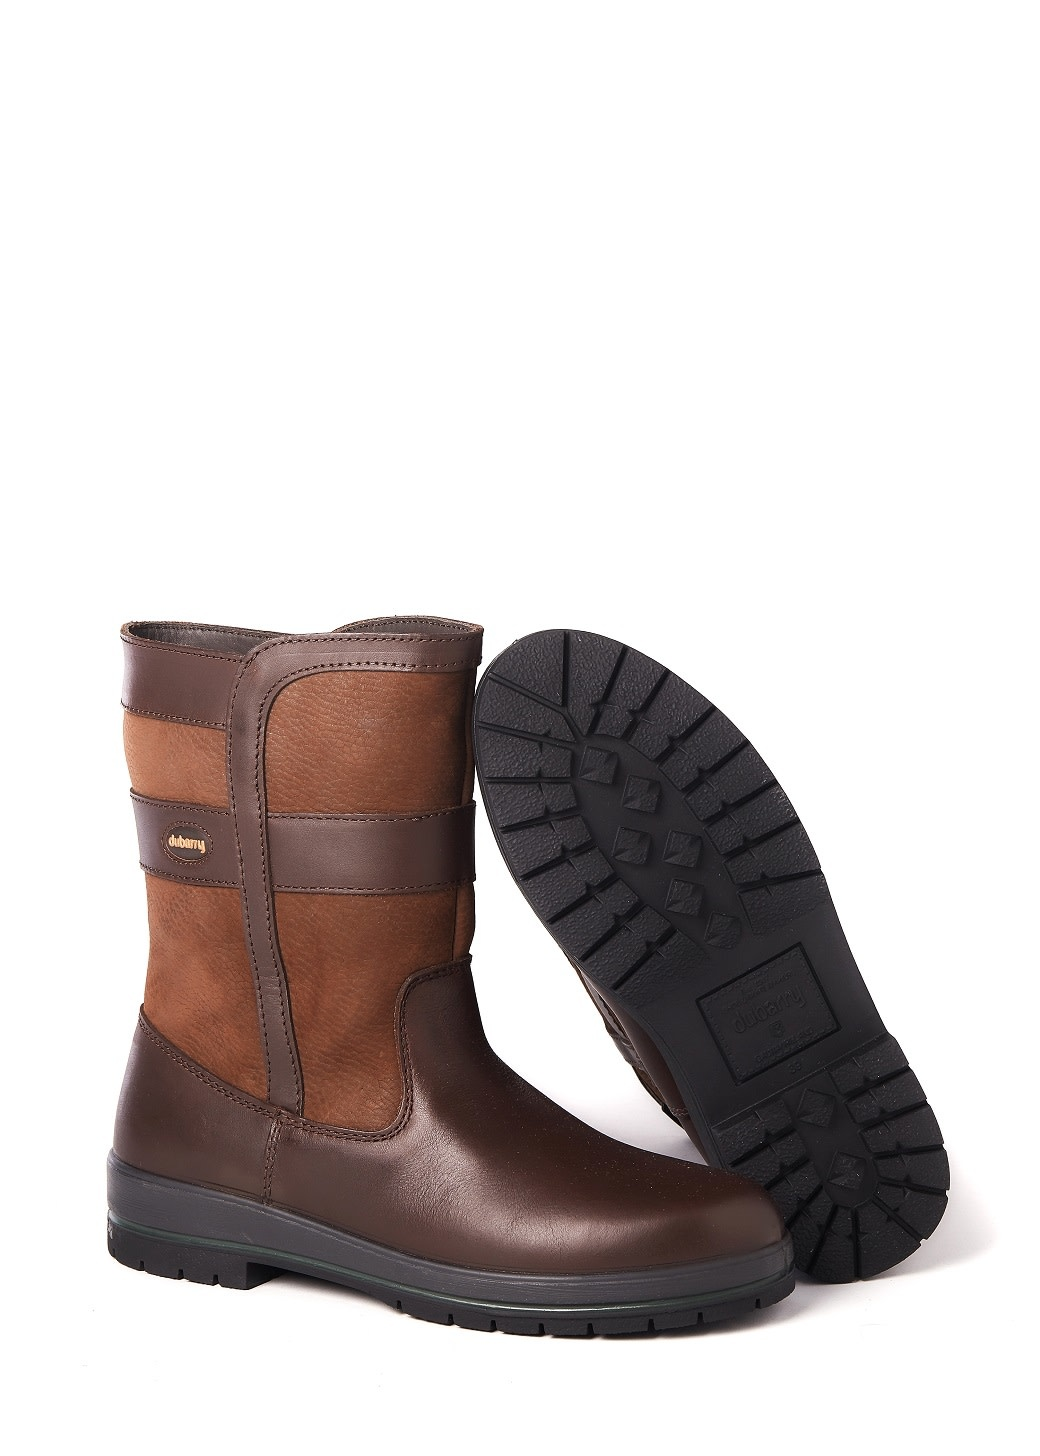 Dubarry Roscommon - Walnut-3